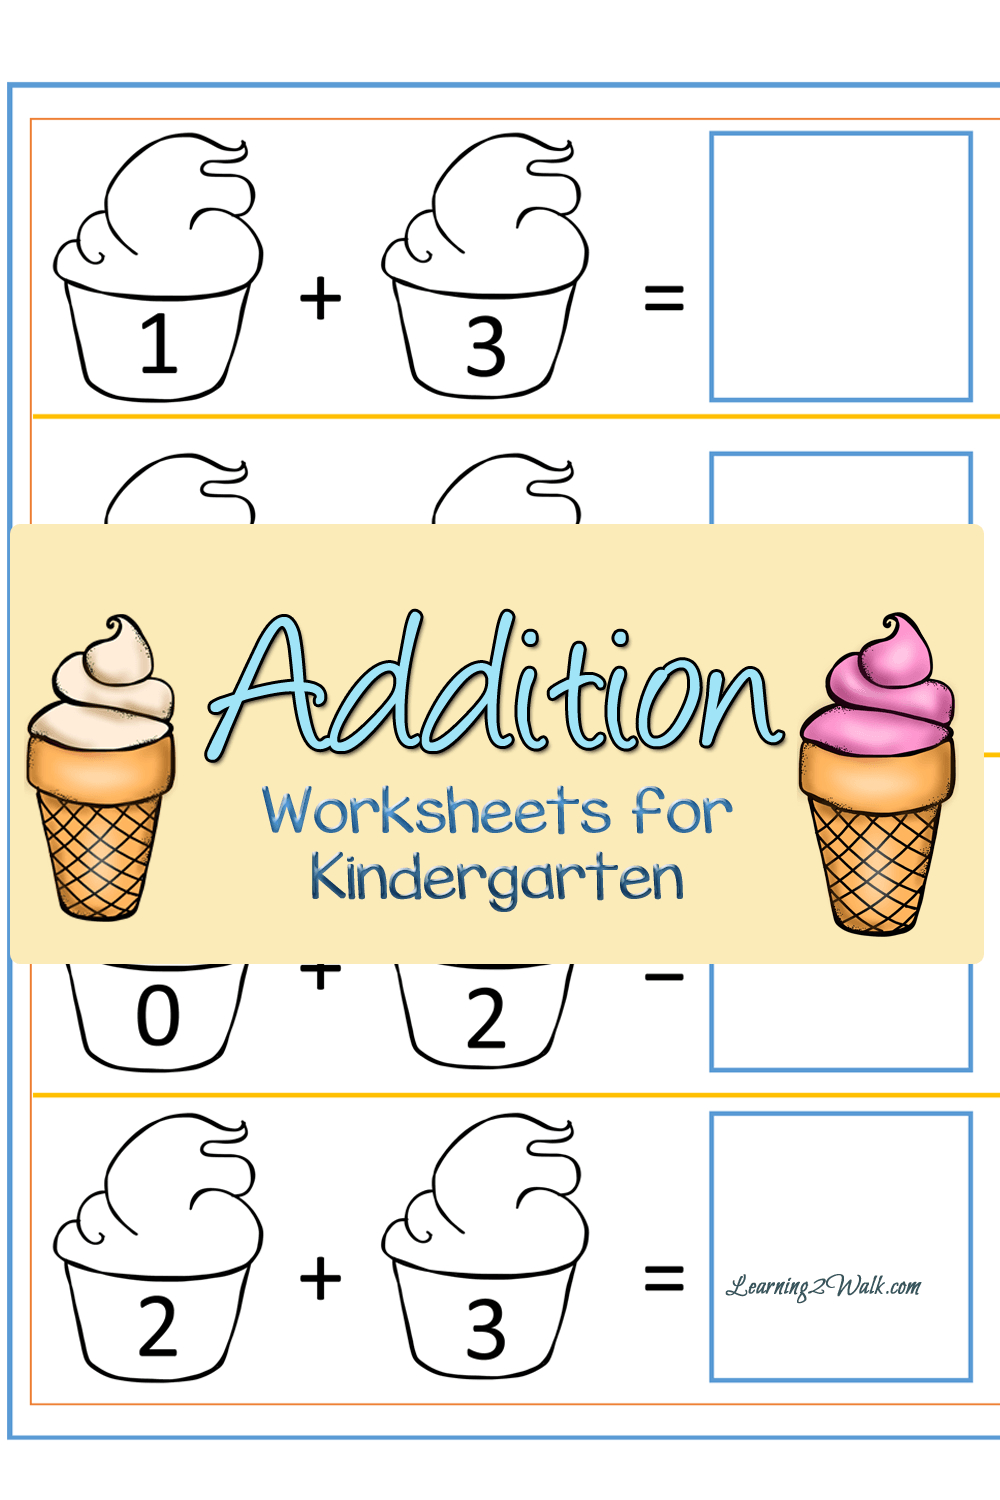 Ice Cream Addition Worksheets For Kindergarten | Summer Camp Ideas - Free Printable Ice Cream Worksheets